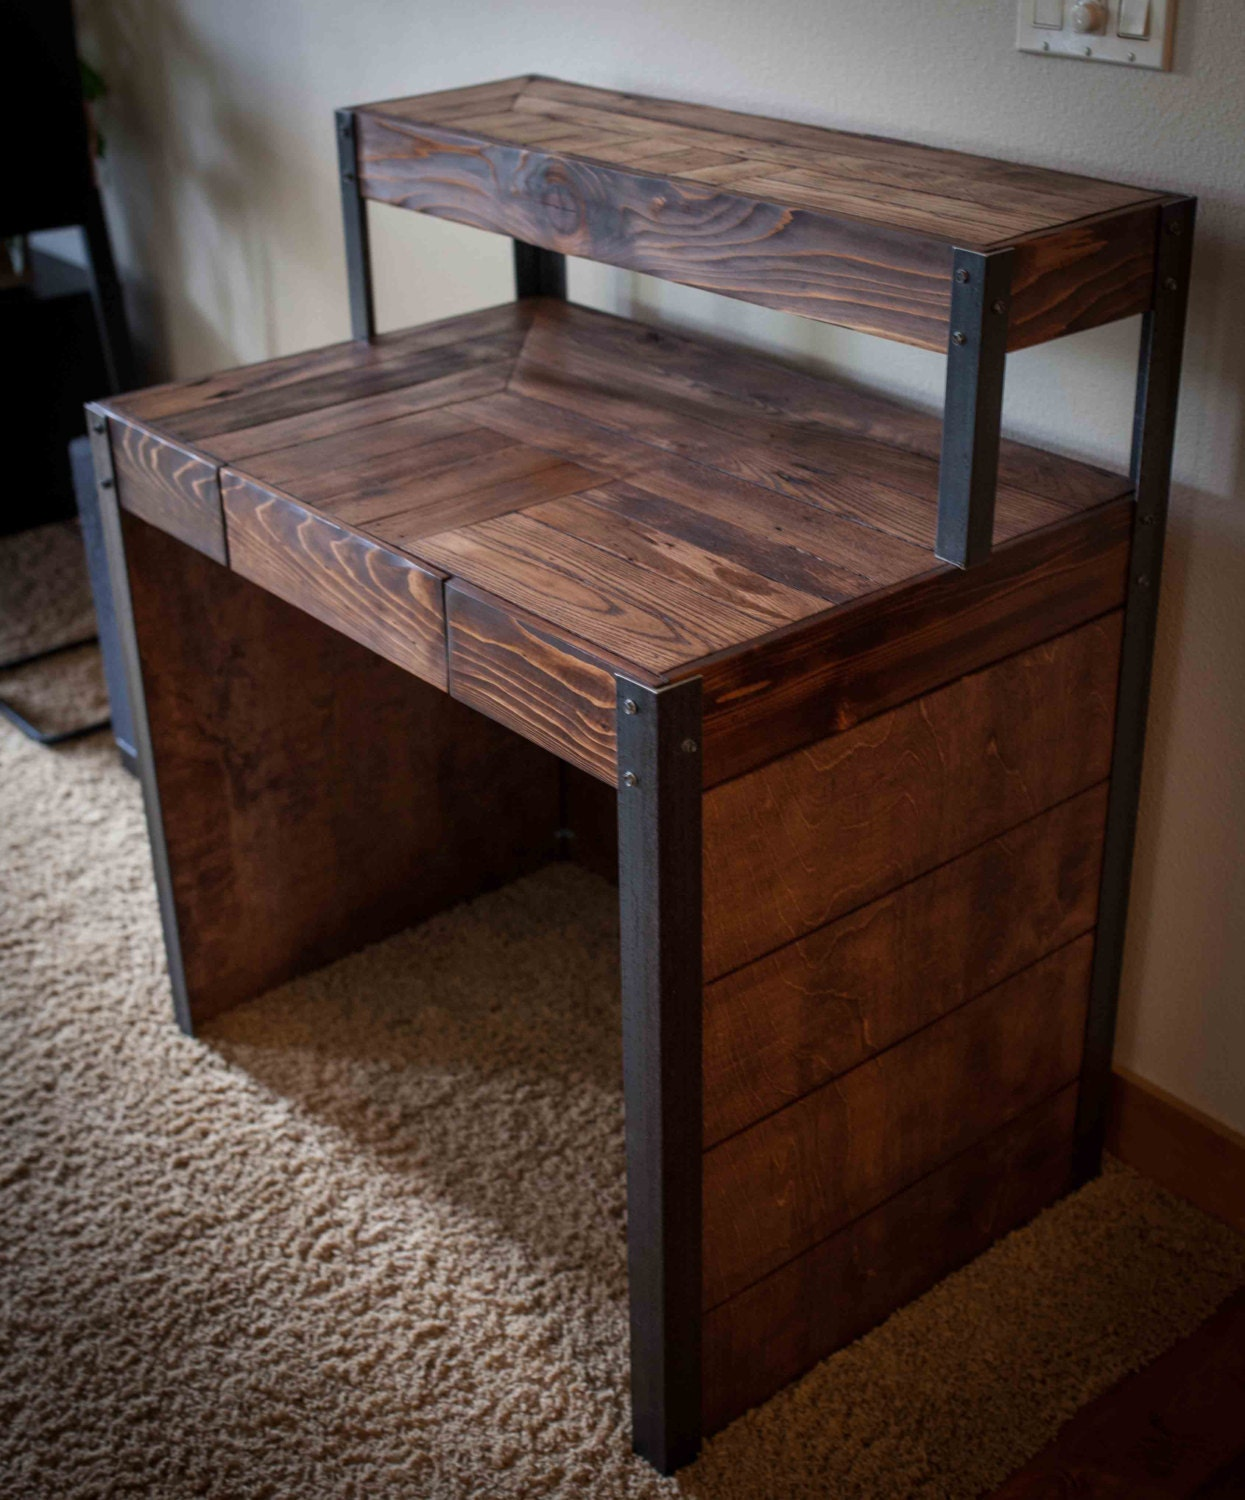 Superb img of Tiered Pallet Wood Desk with Drawer and Side by woodandwiredesigns with #2F1C14 color and 1245x1500 pixels